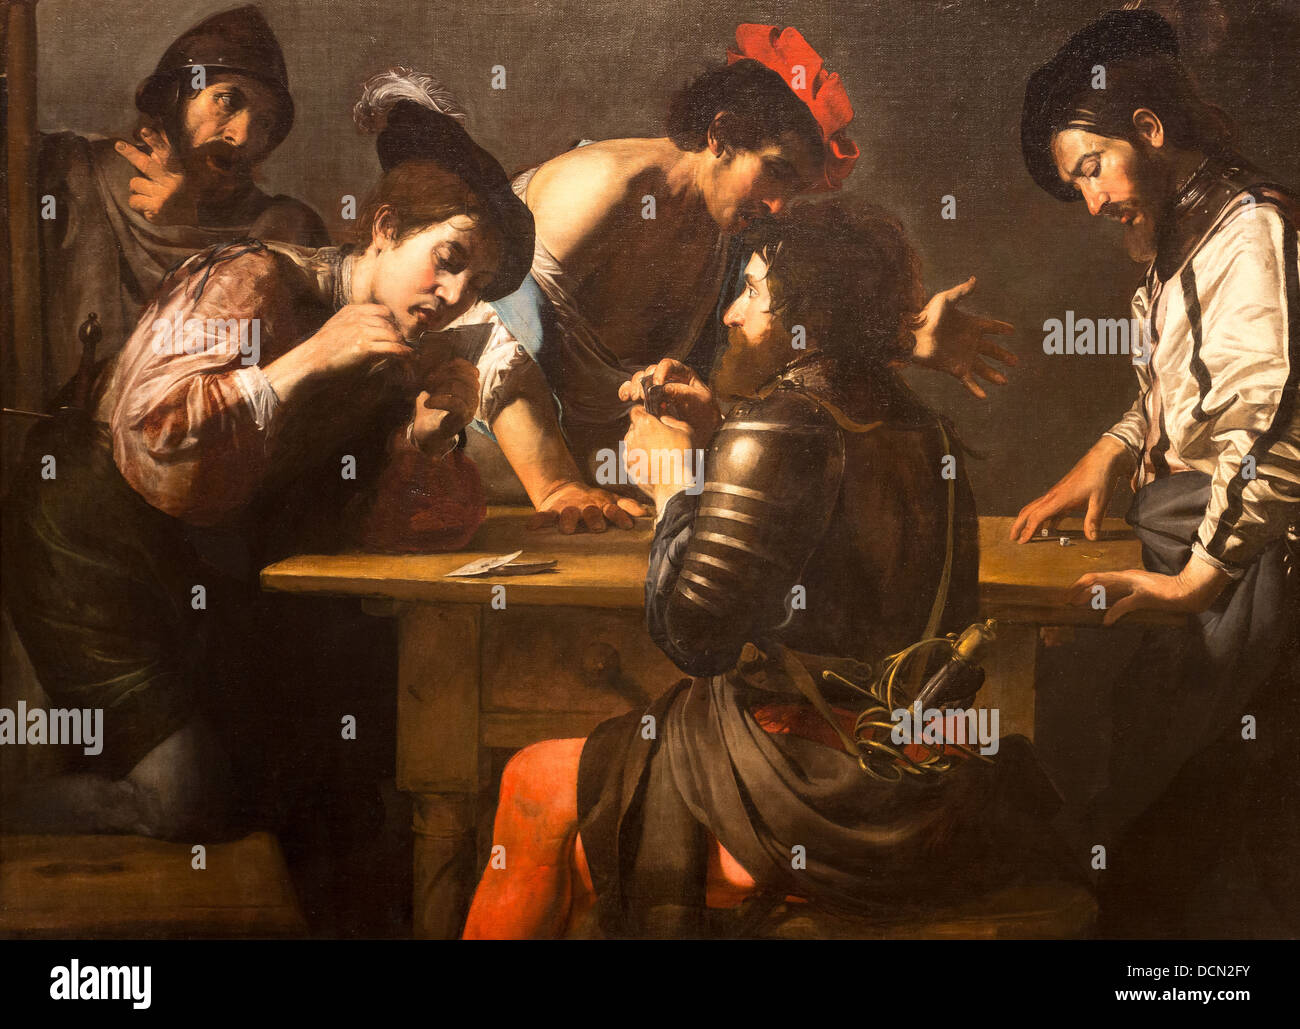 17th century  -  Soldiers Playing Cards and Dice (The Cheats), 1620 - Valentin de Boulogne - Stock Image